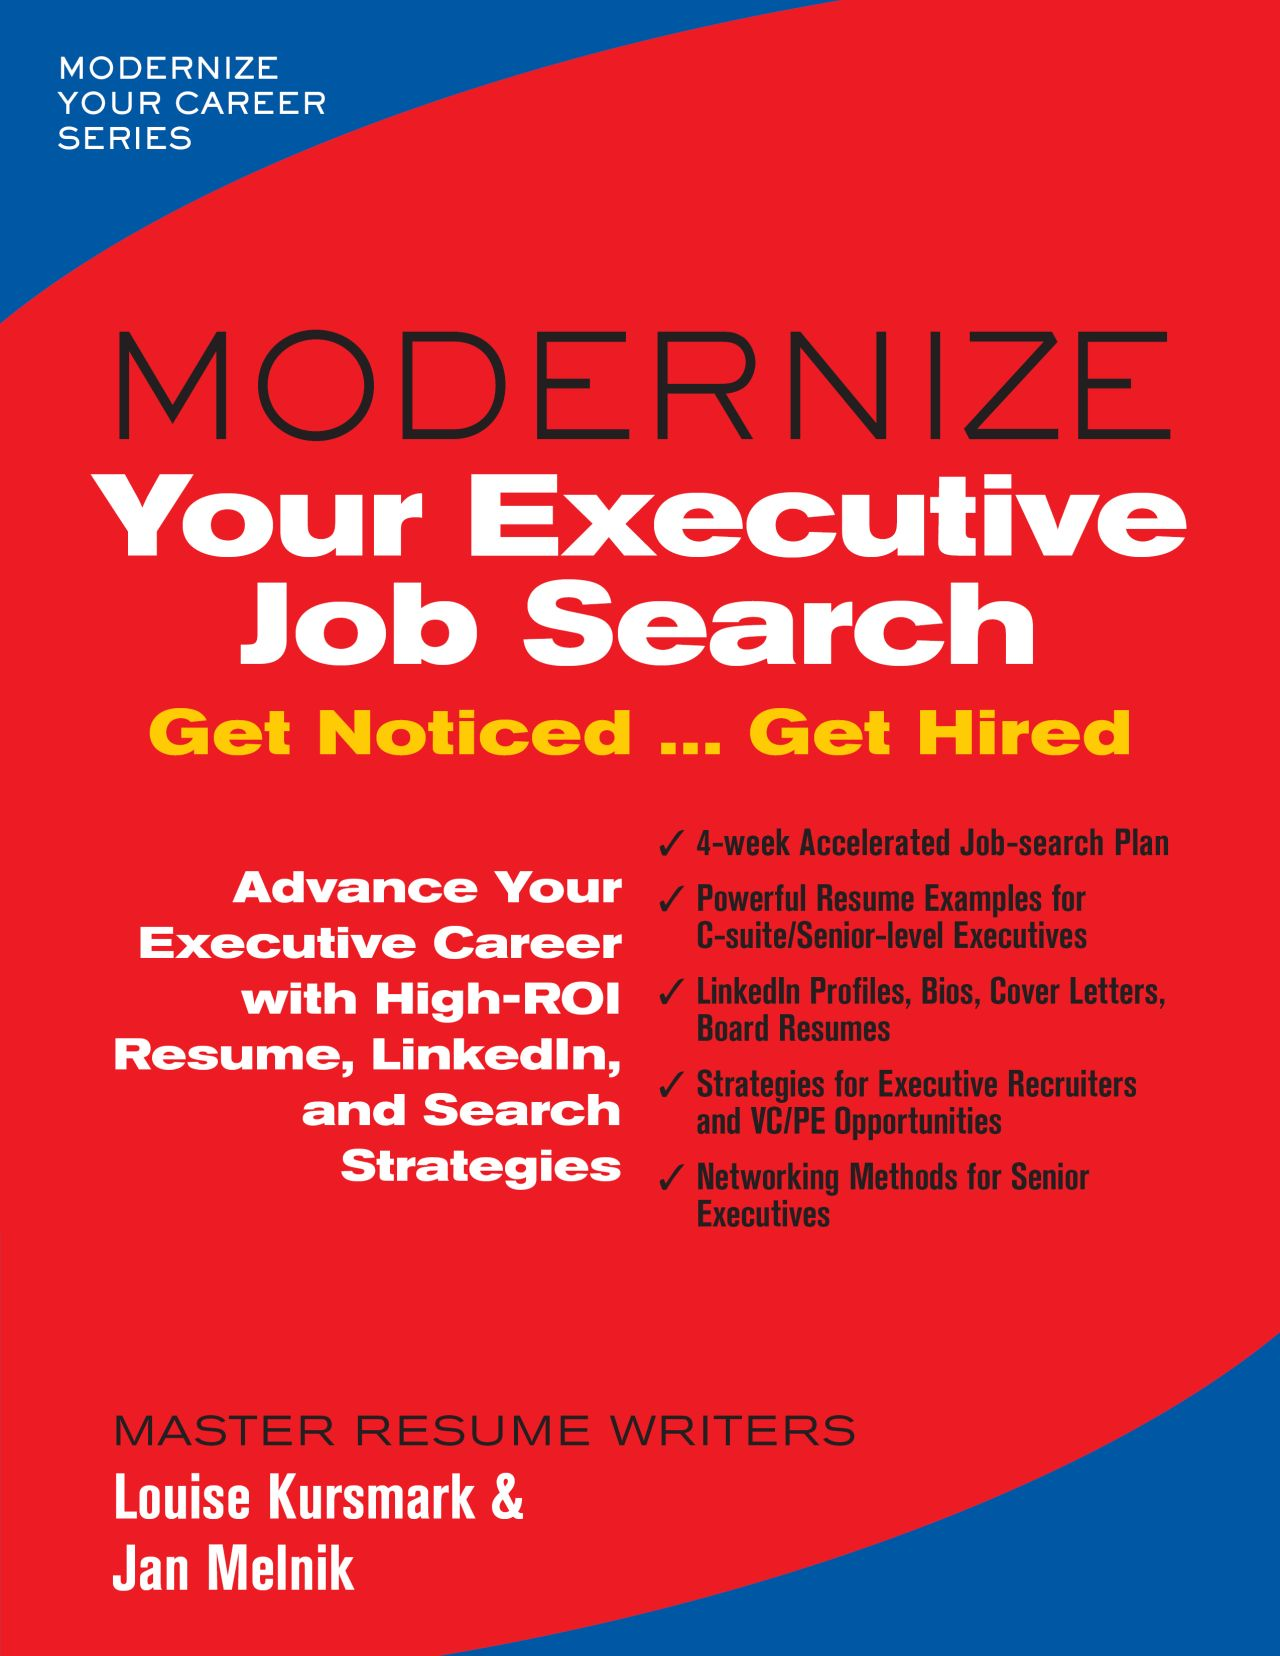 published in resume and cover letter books career impressions best for writing modernize Resume Best Books For Resume And Cover Letter Writing